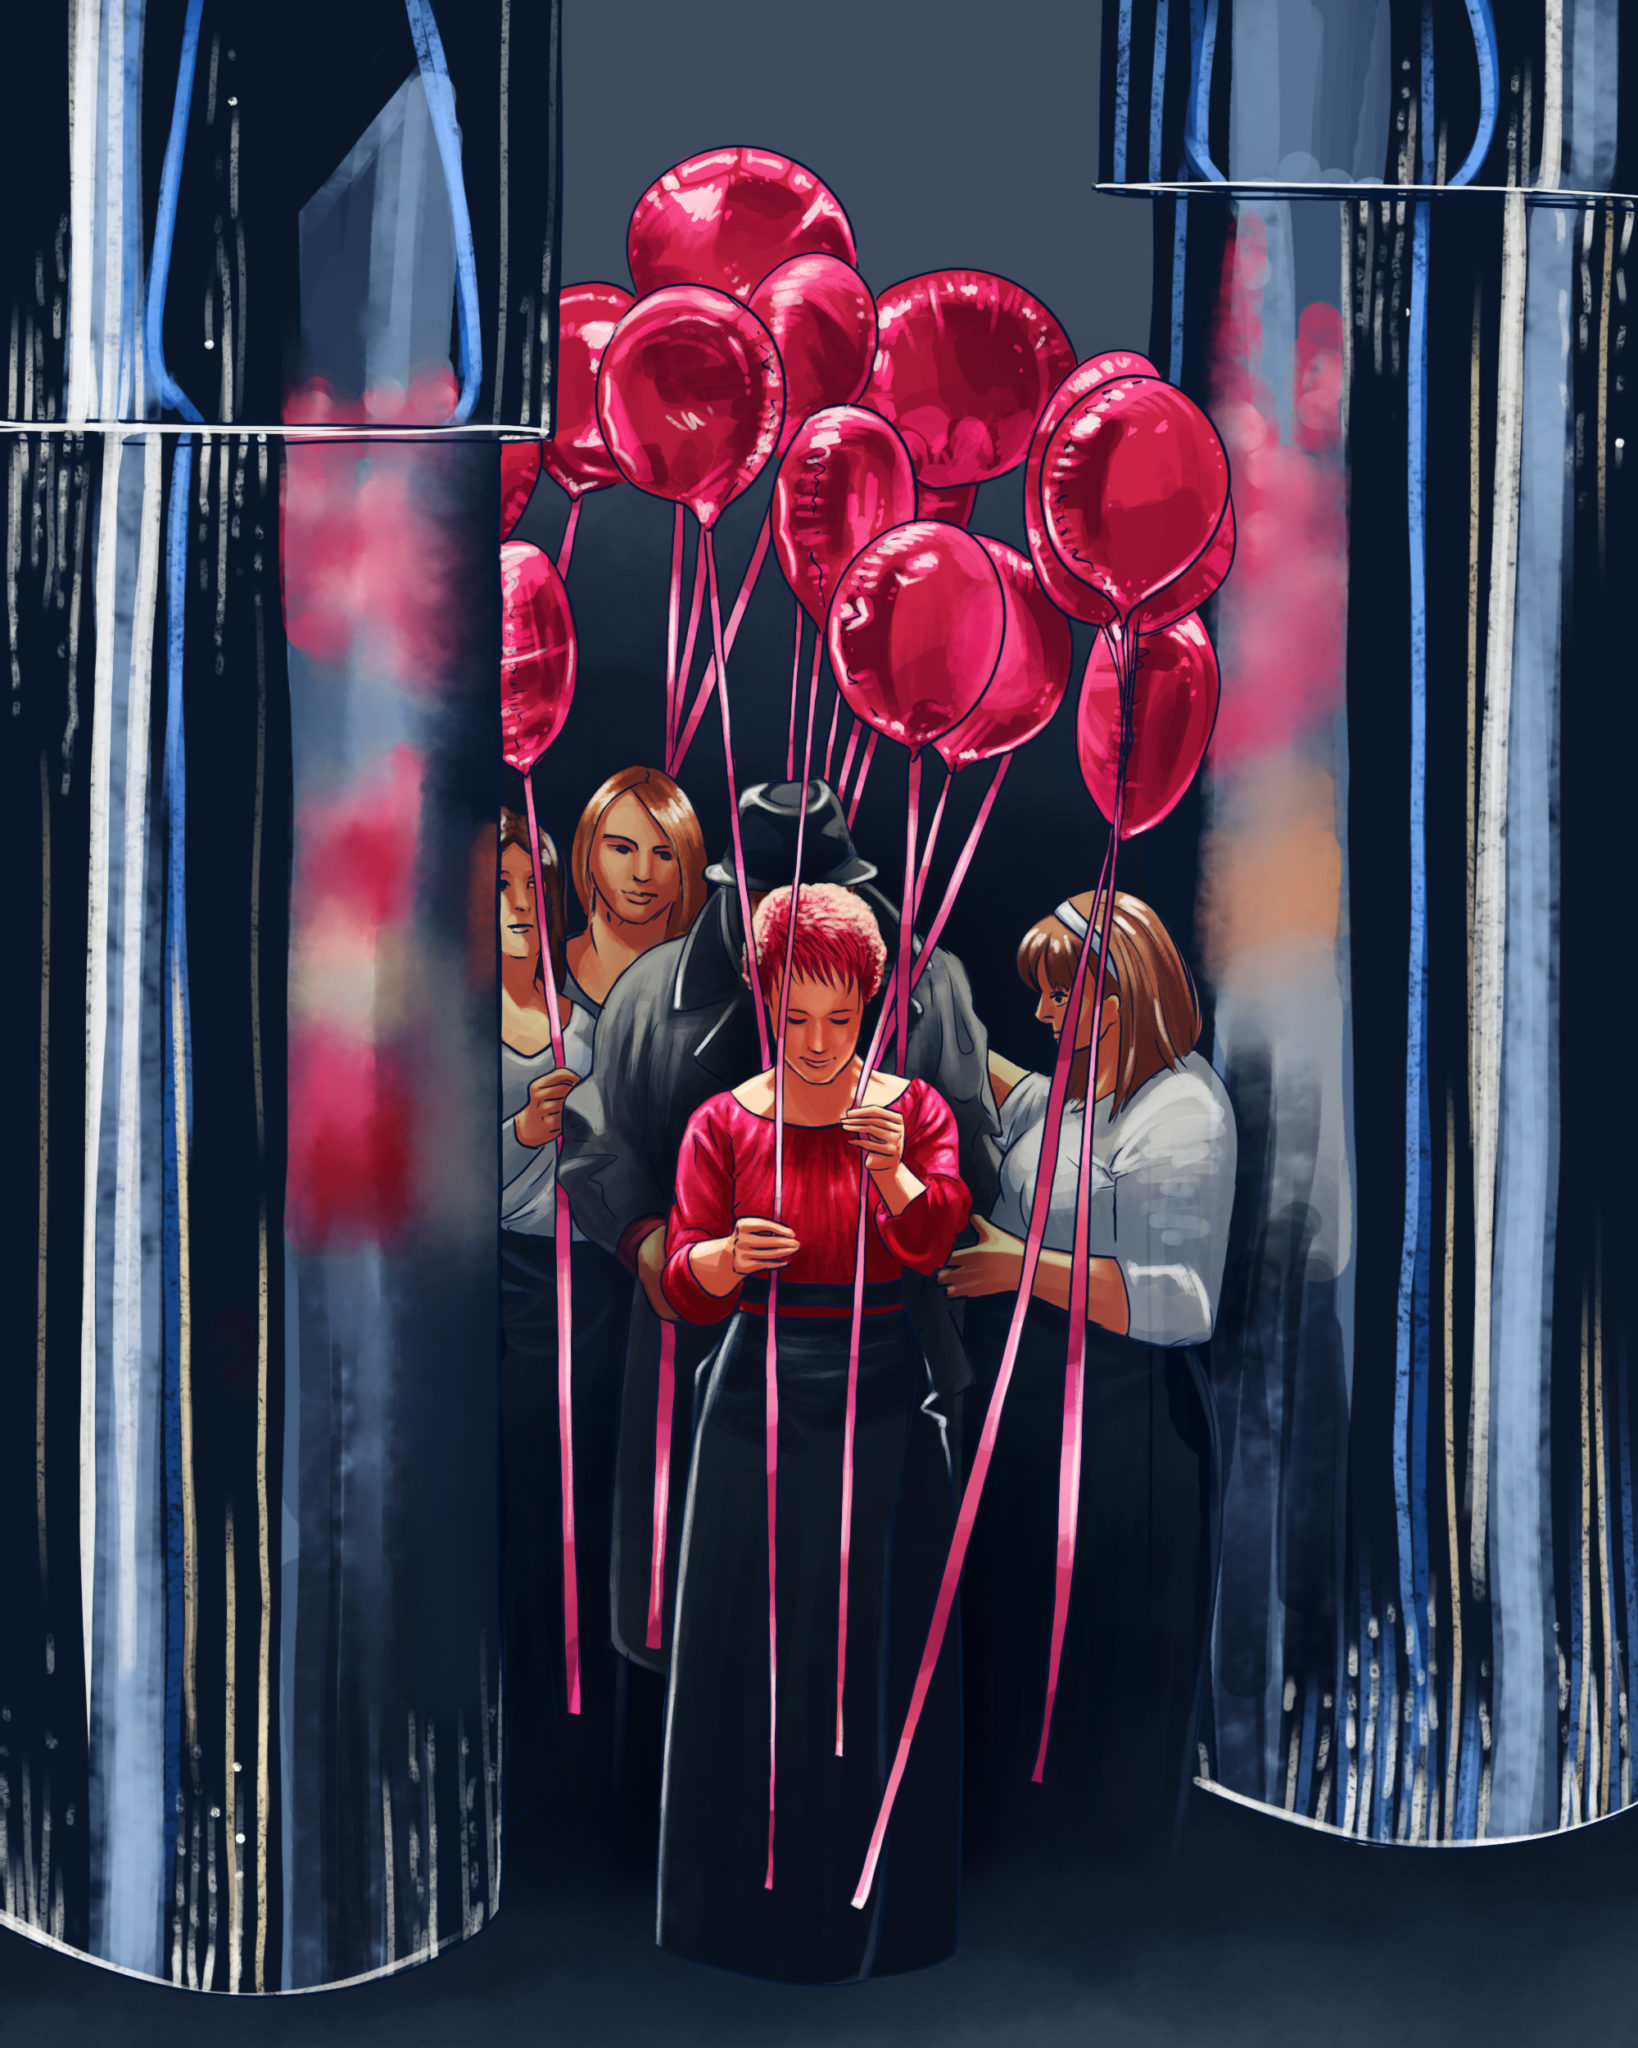 illustration digitale vendeuse de ballons